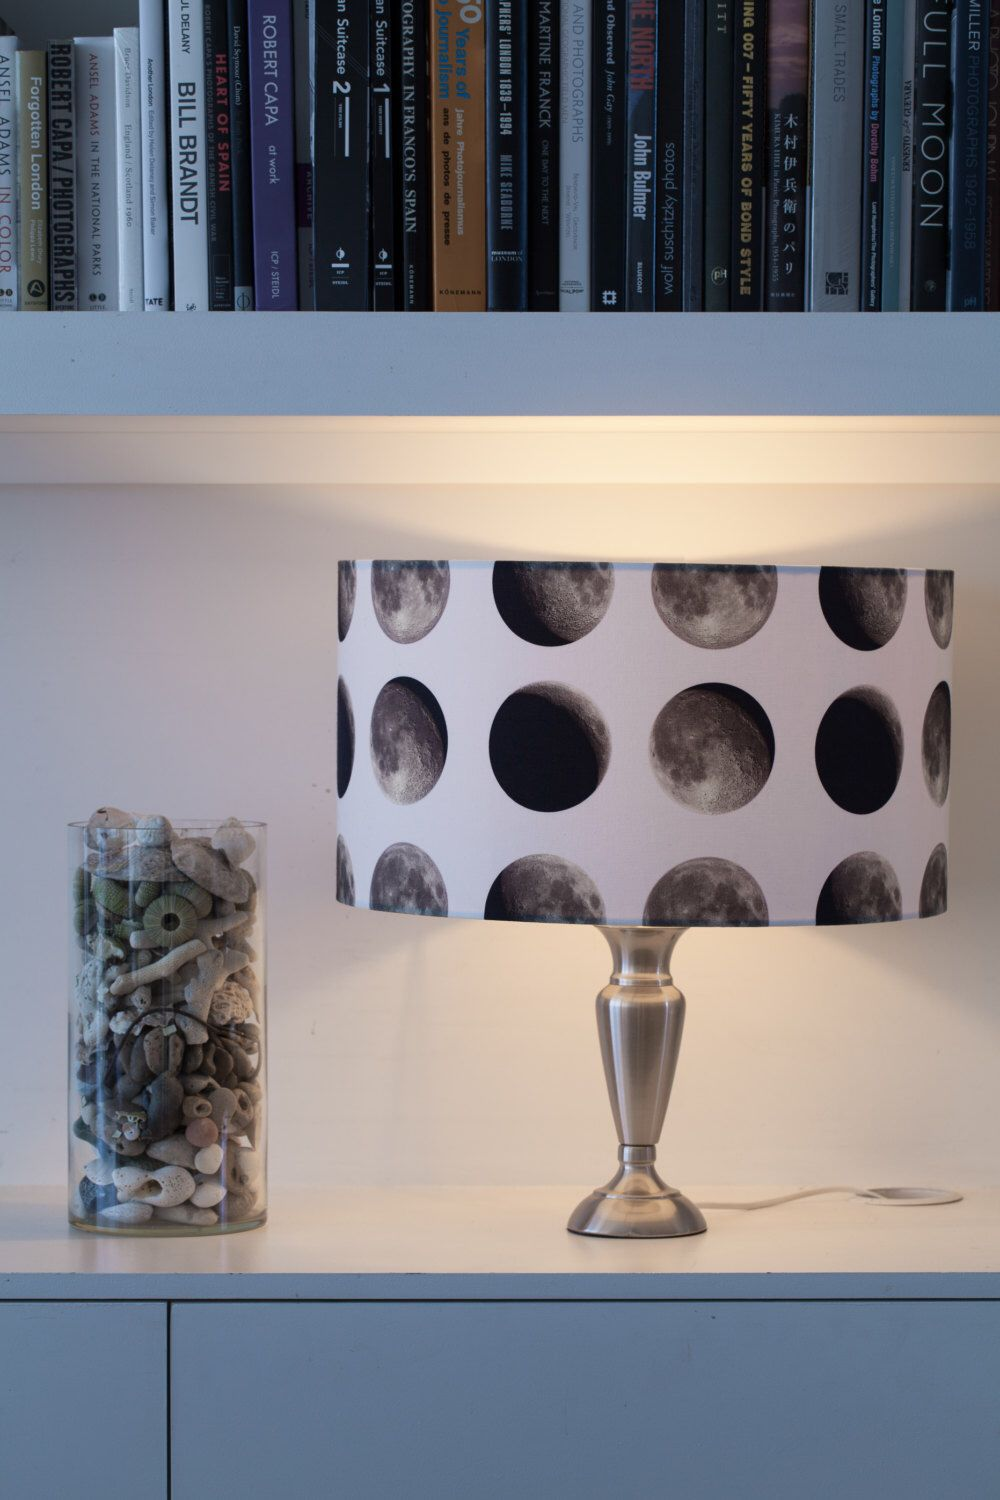 Lunar Moon Lampshade - Space 1a - outer space - moon phase  lighting - quirky home - Gift for Home - Nursery lighting - British Design by Space1aDesign on Etsy https://www.etsy.com/listing/384460242/lunar-moon-lampshade-space-1a-outer